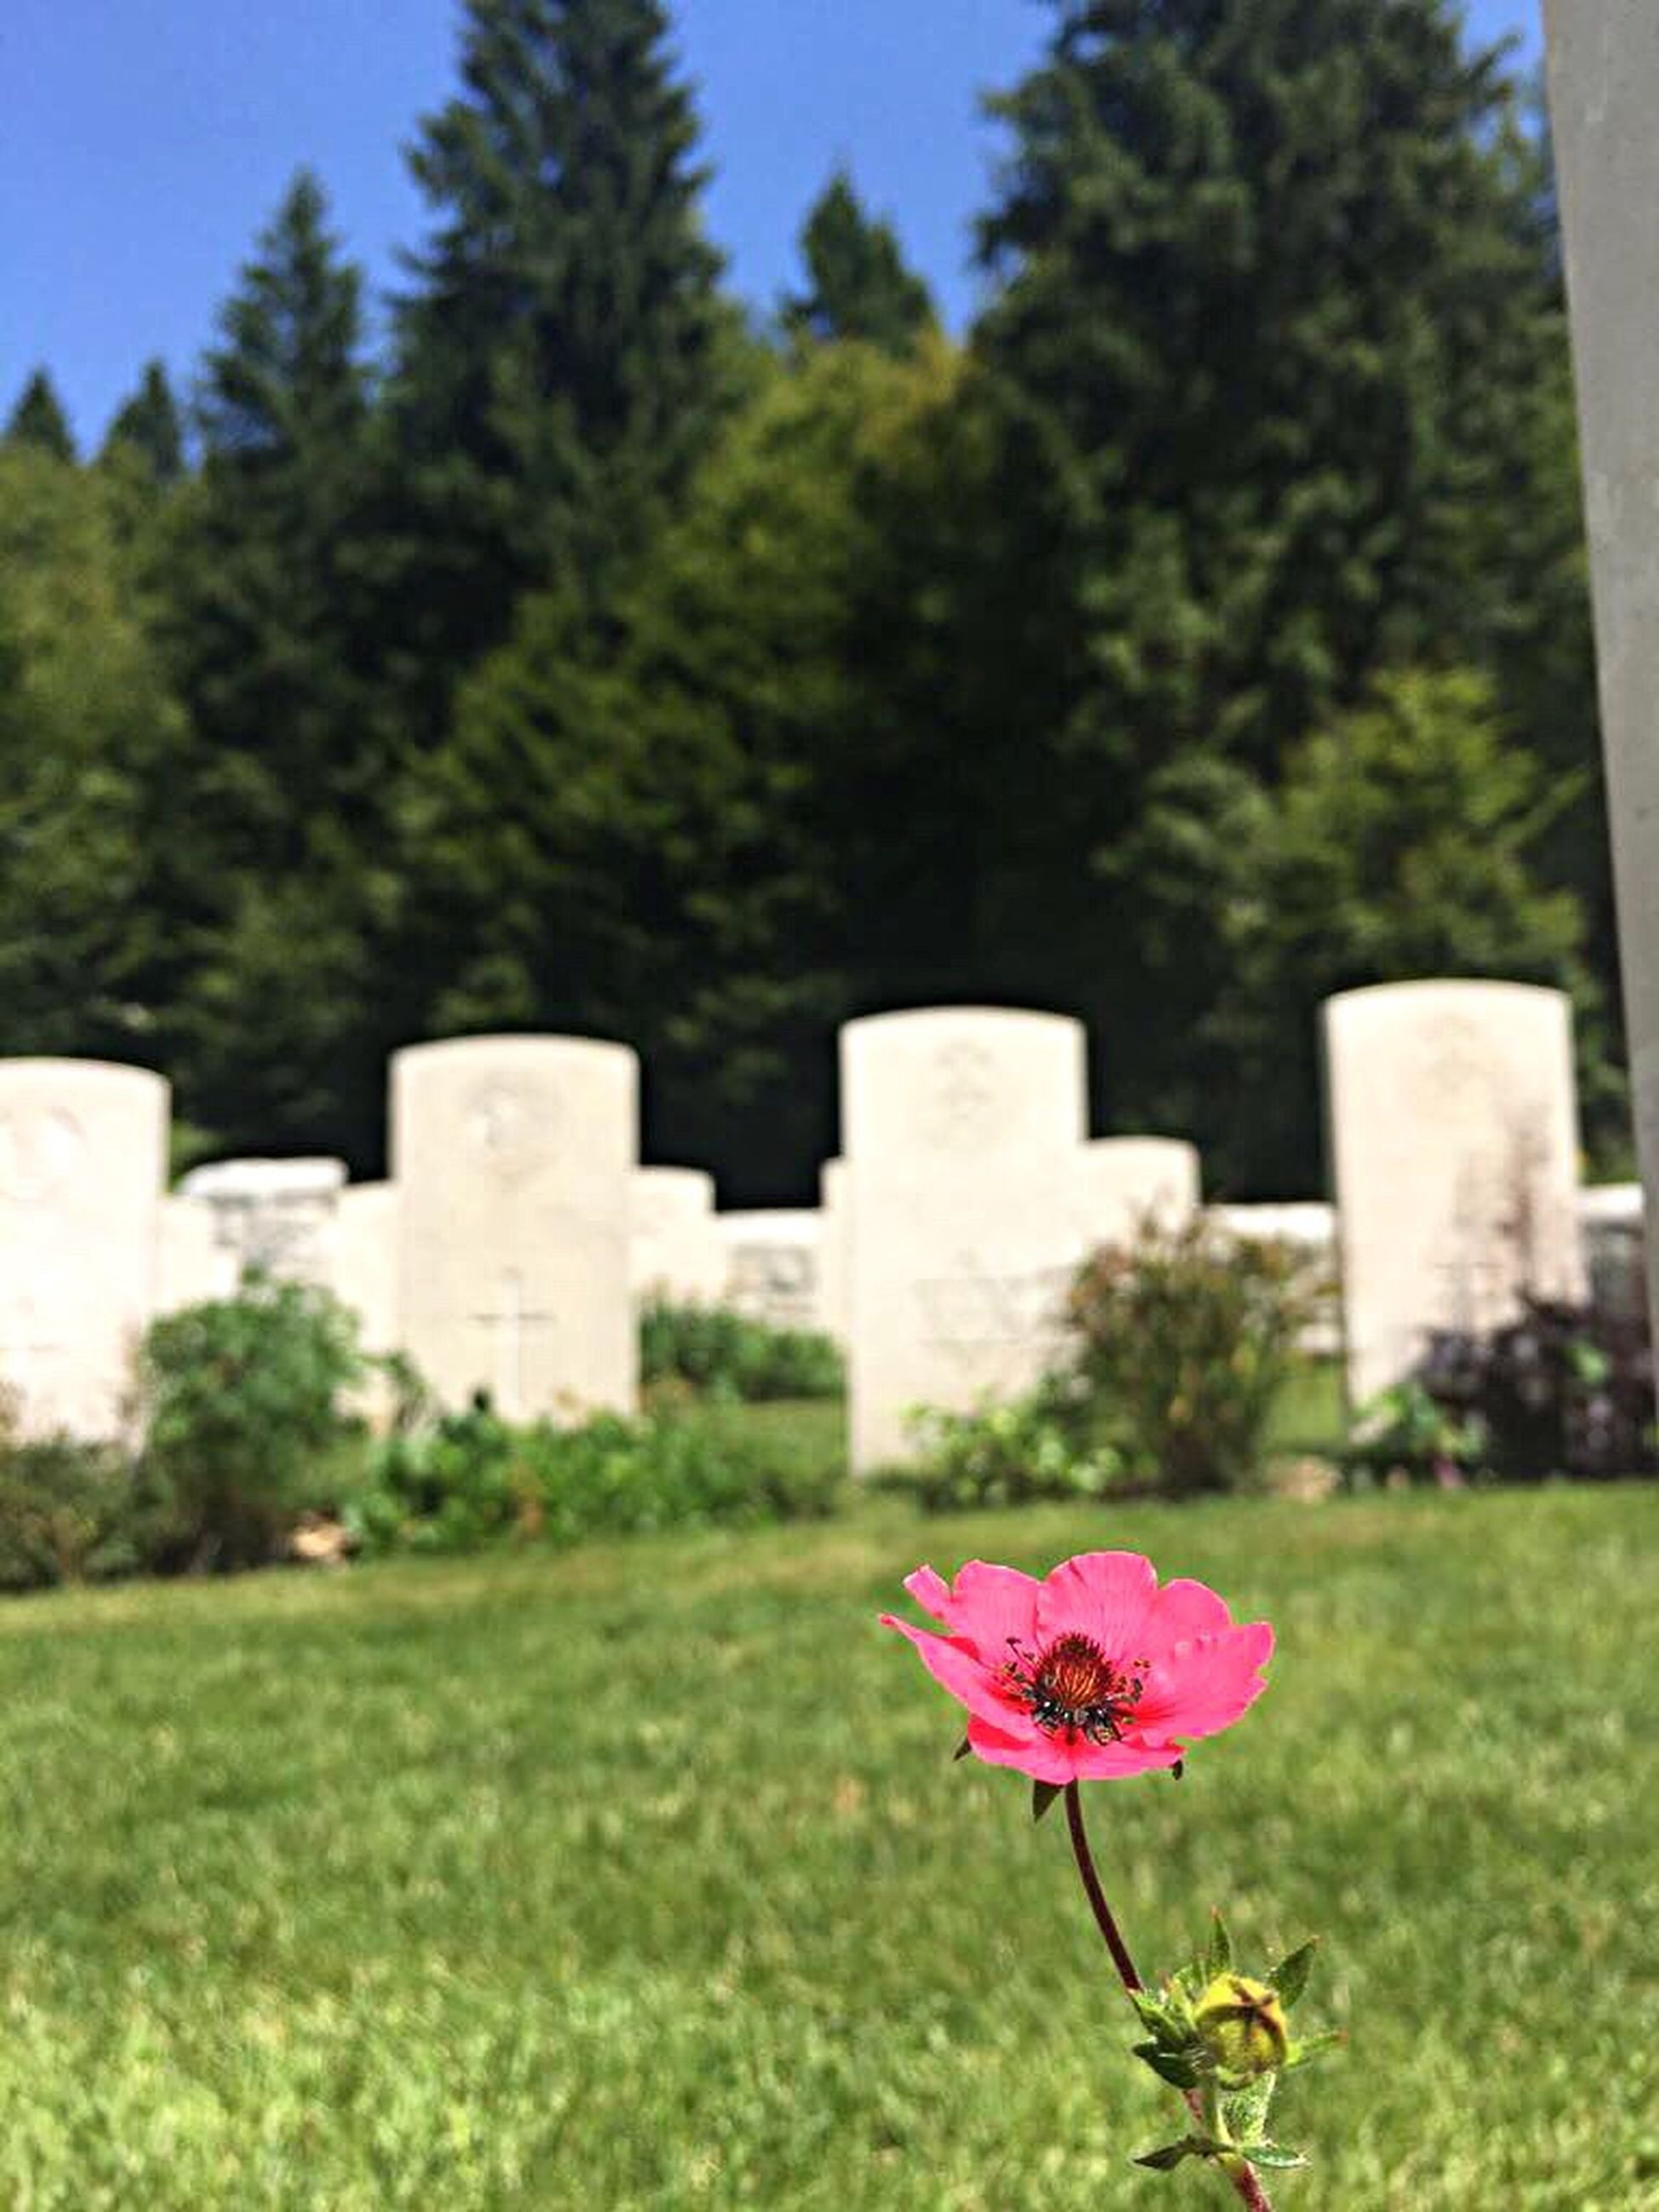 cemetery, tombstone, memorial, flower, grass, nature, no people, day, grave, tree, outdoors, gravestone, graveyard, growth, plant, red, beauty in nature, close-up, flower head